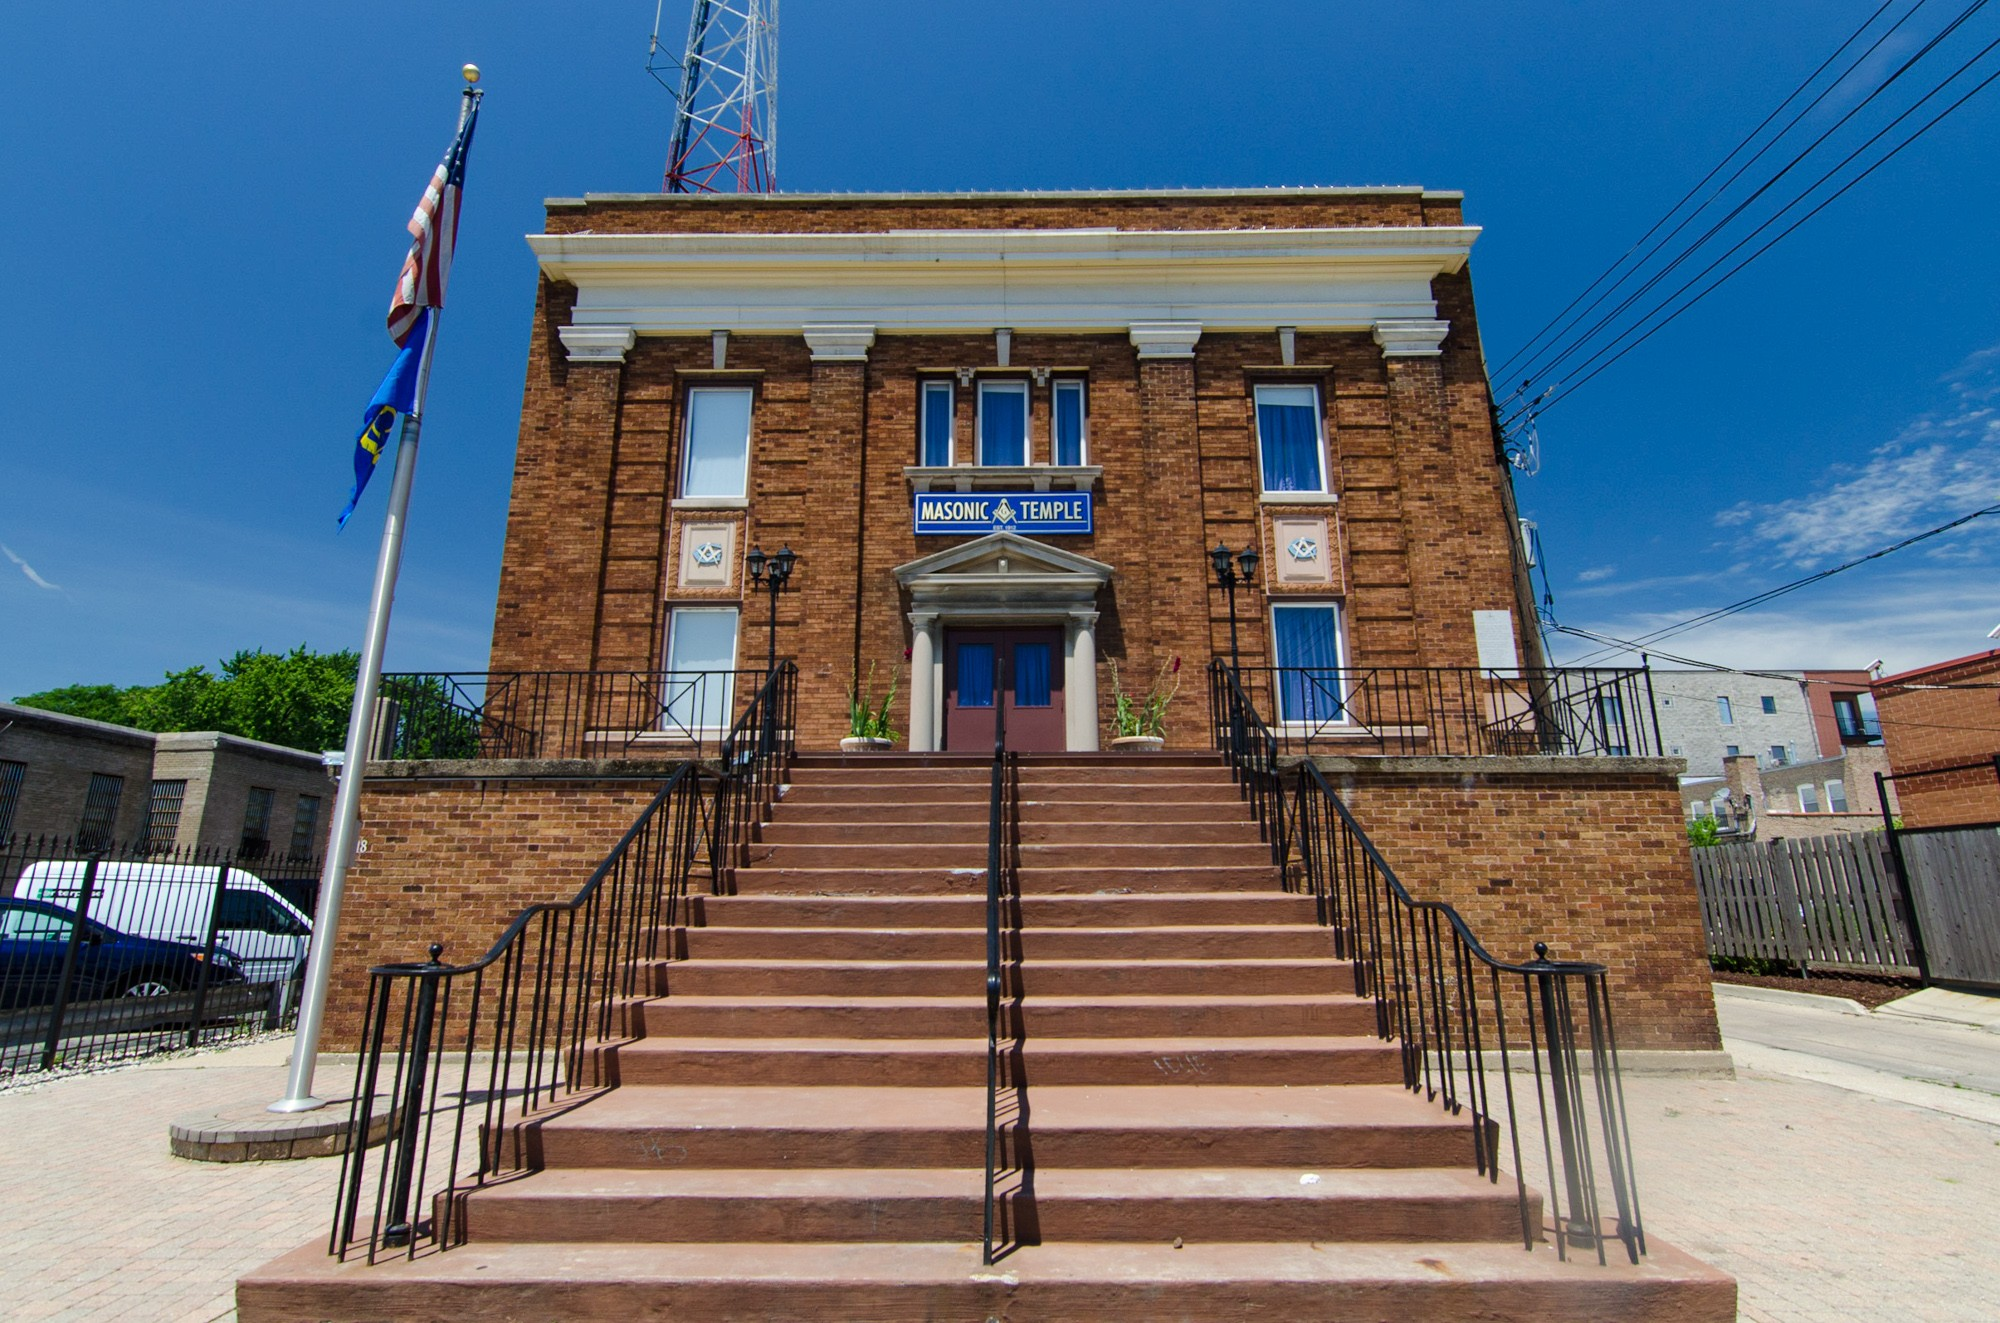 Jefferson Masonic Temple